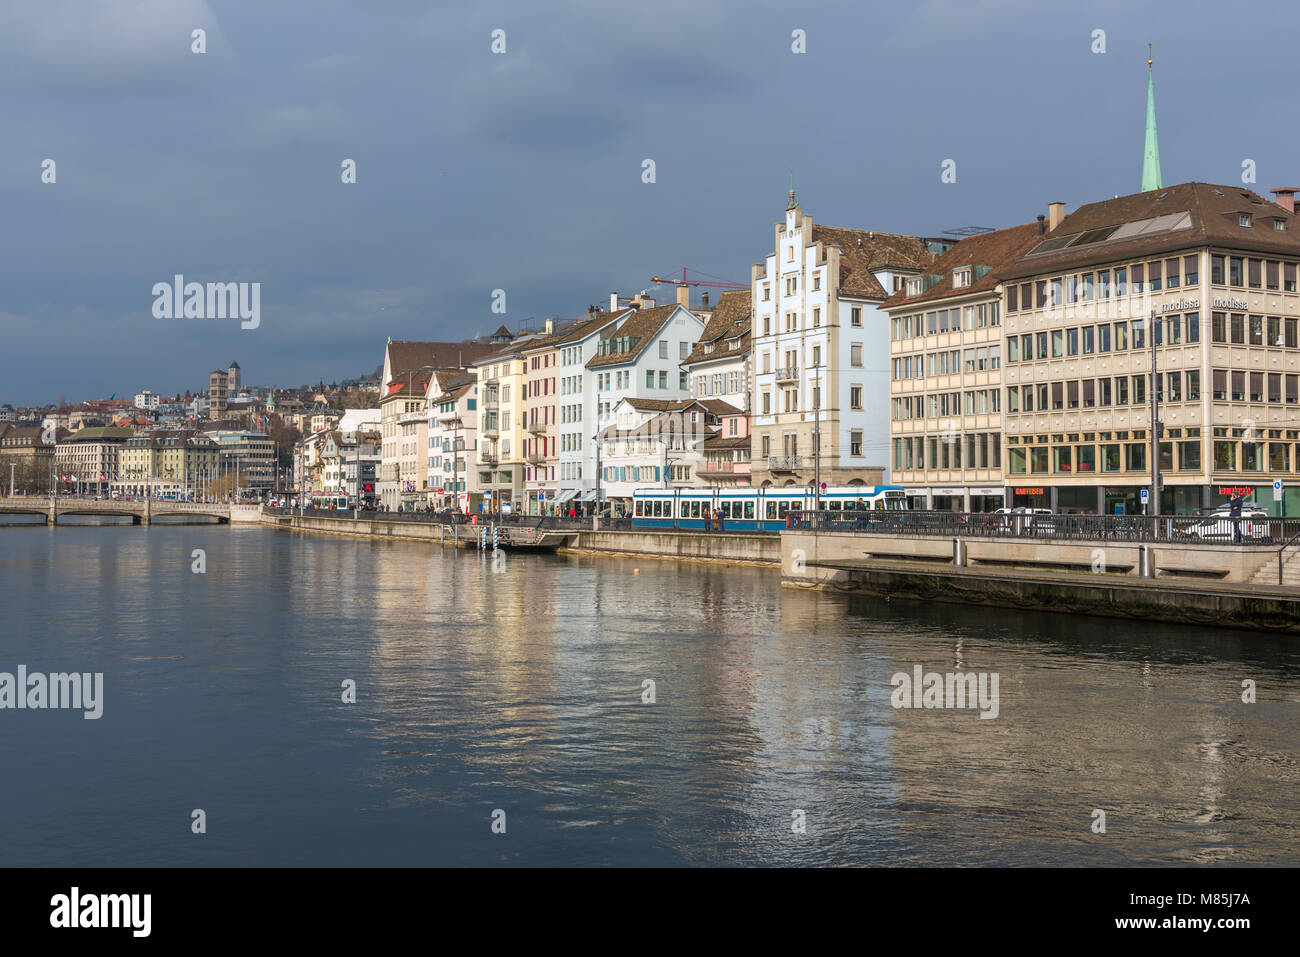 Limmat river in Zurich, Switzerland on an overcast day - Stock Image